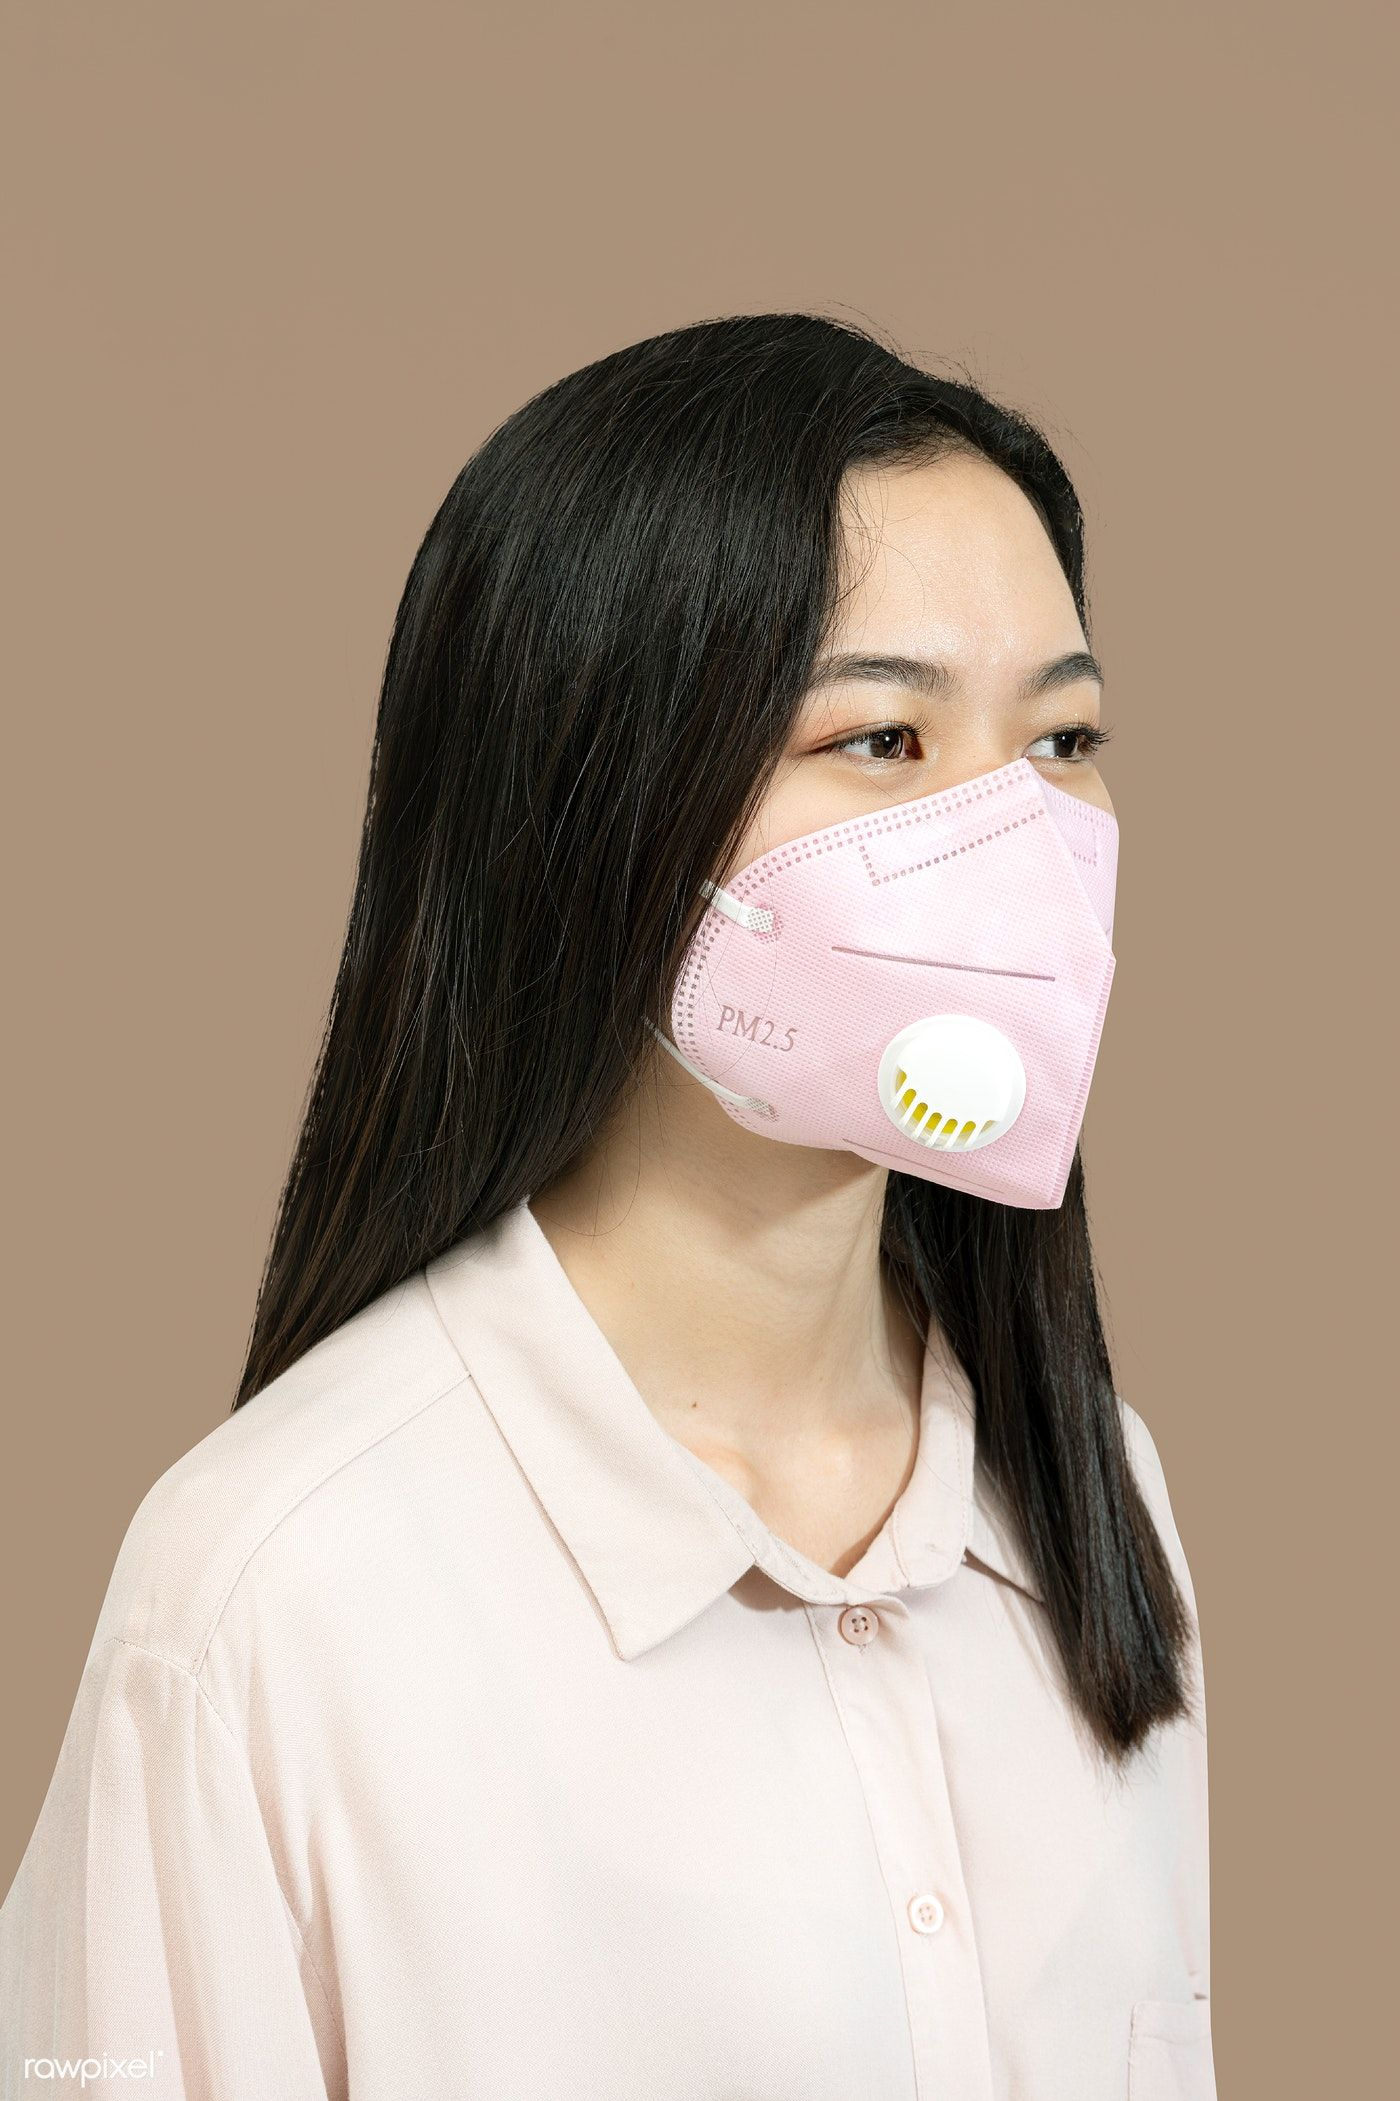 Wearing A Mask Below Your Nose Meme - MASK